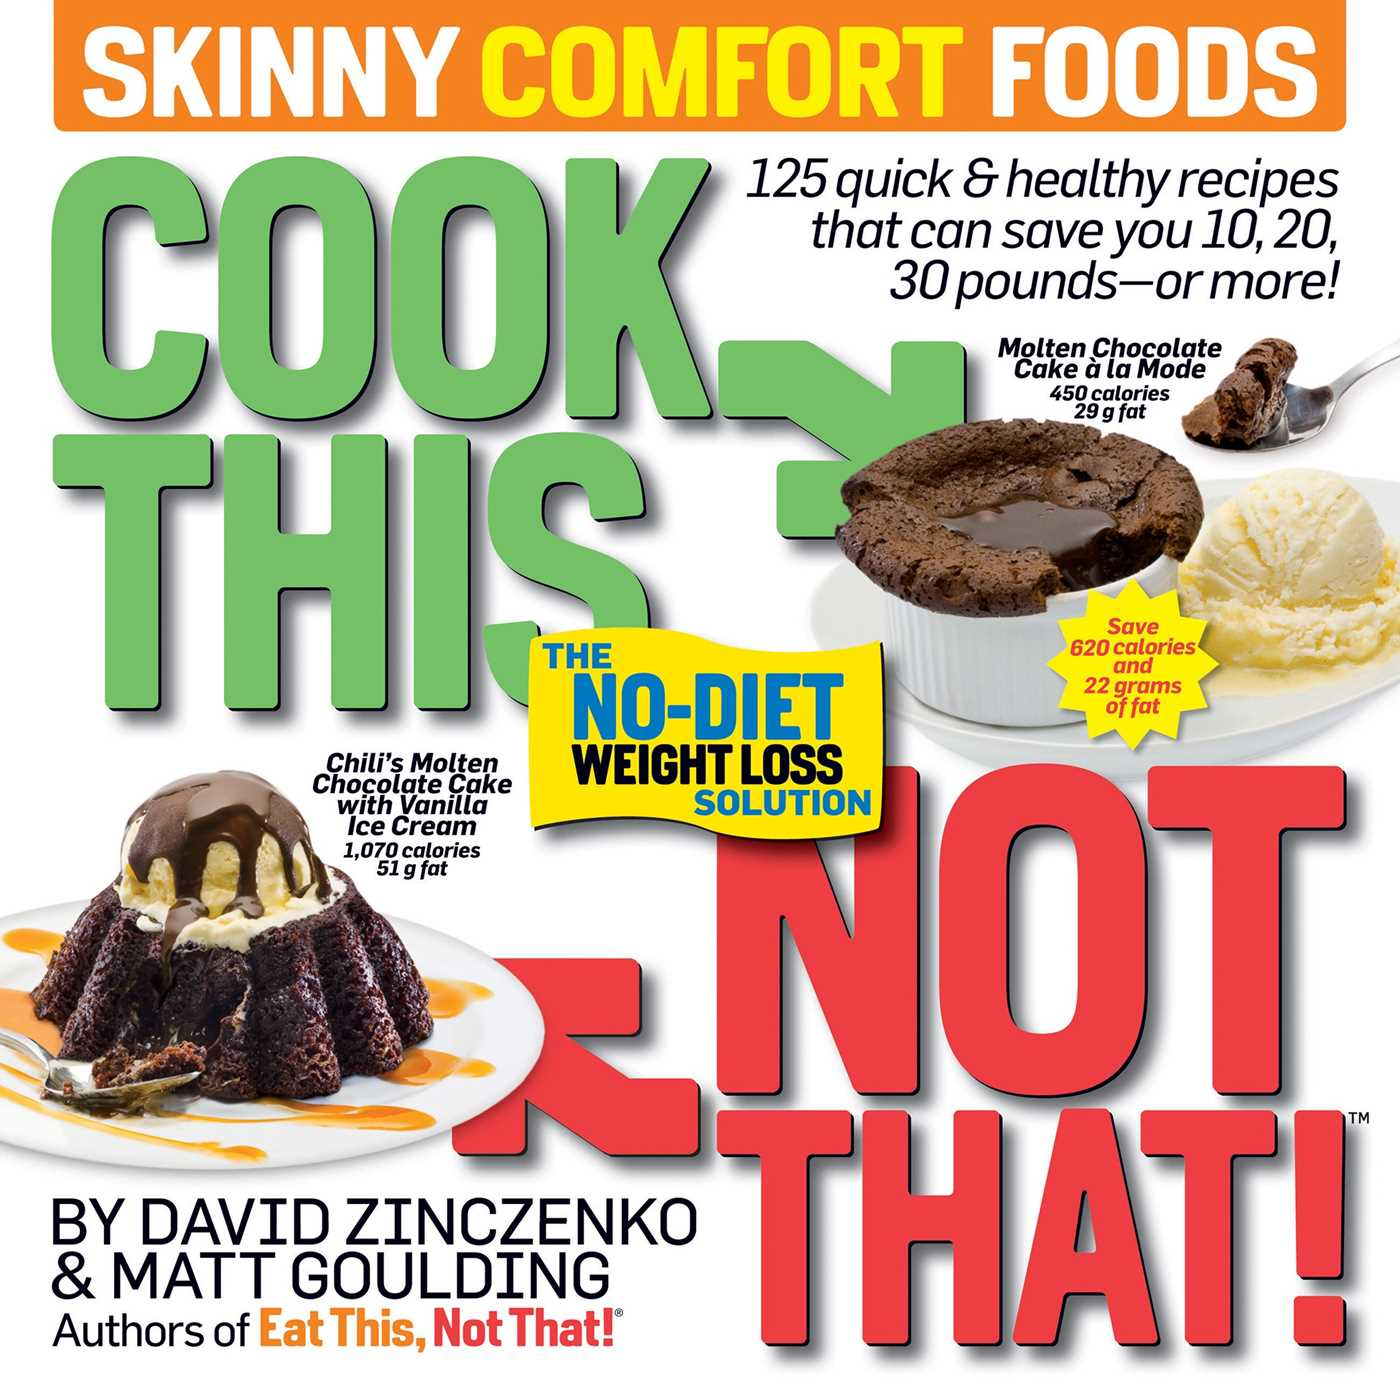 Cook this not that skinny comfort foods 9781940358345 hr